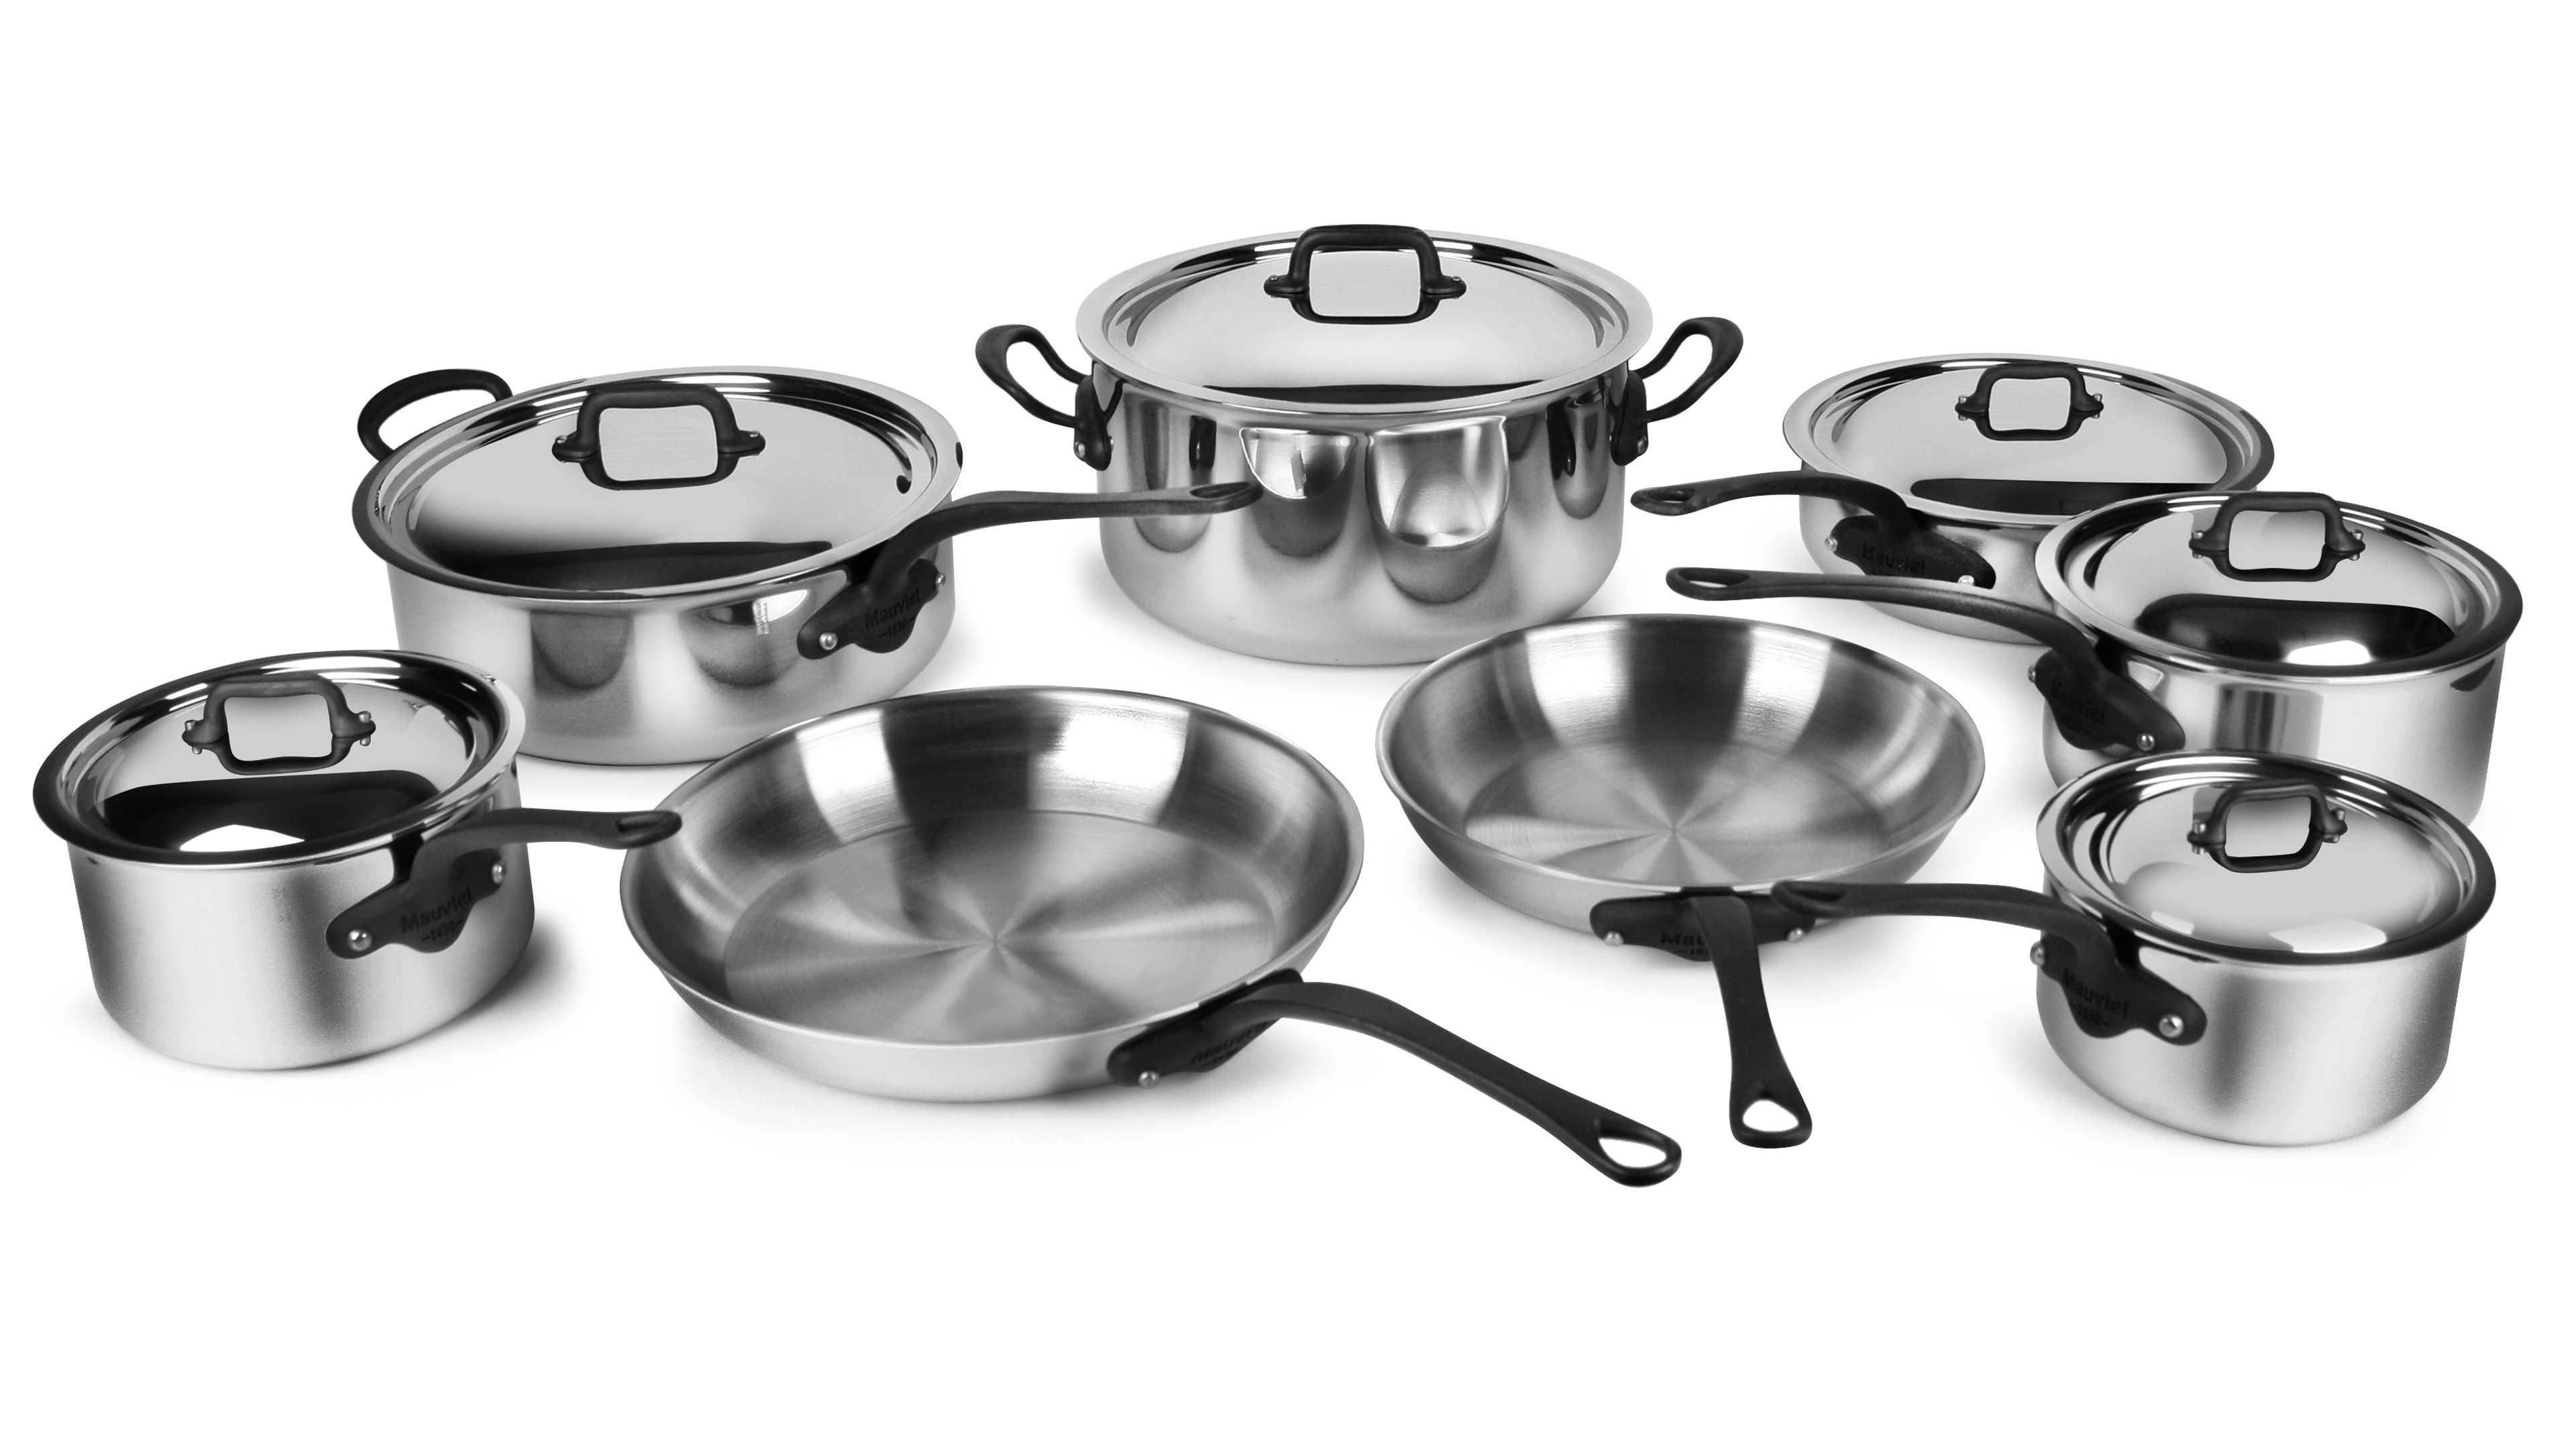 Mauviel Stainless Steel Cookware Set M Cook Pro 14 Piece